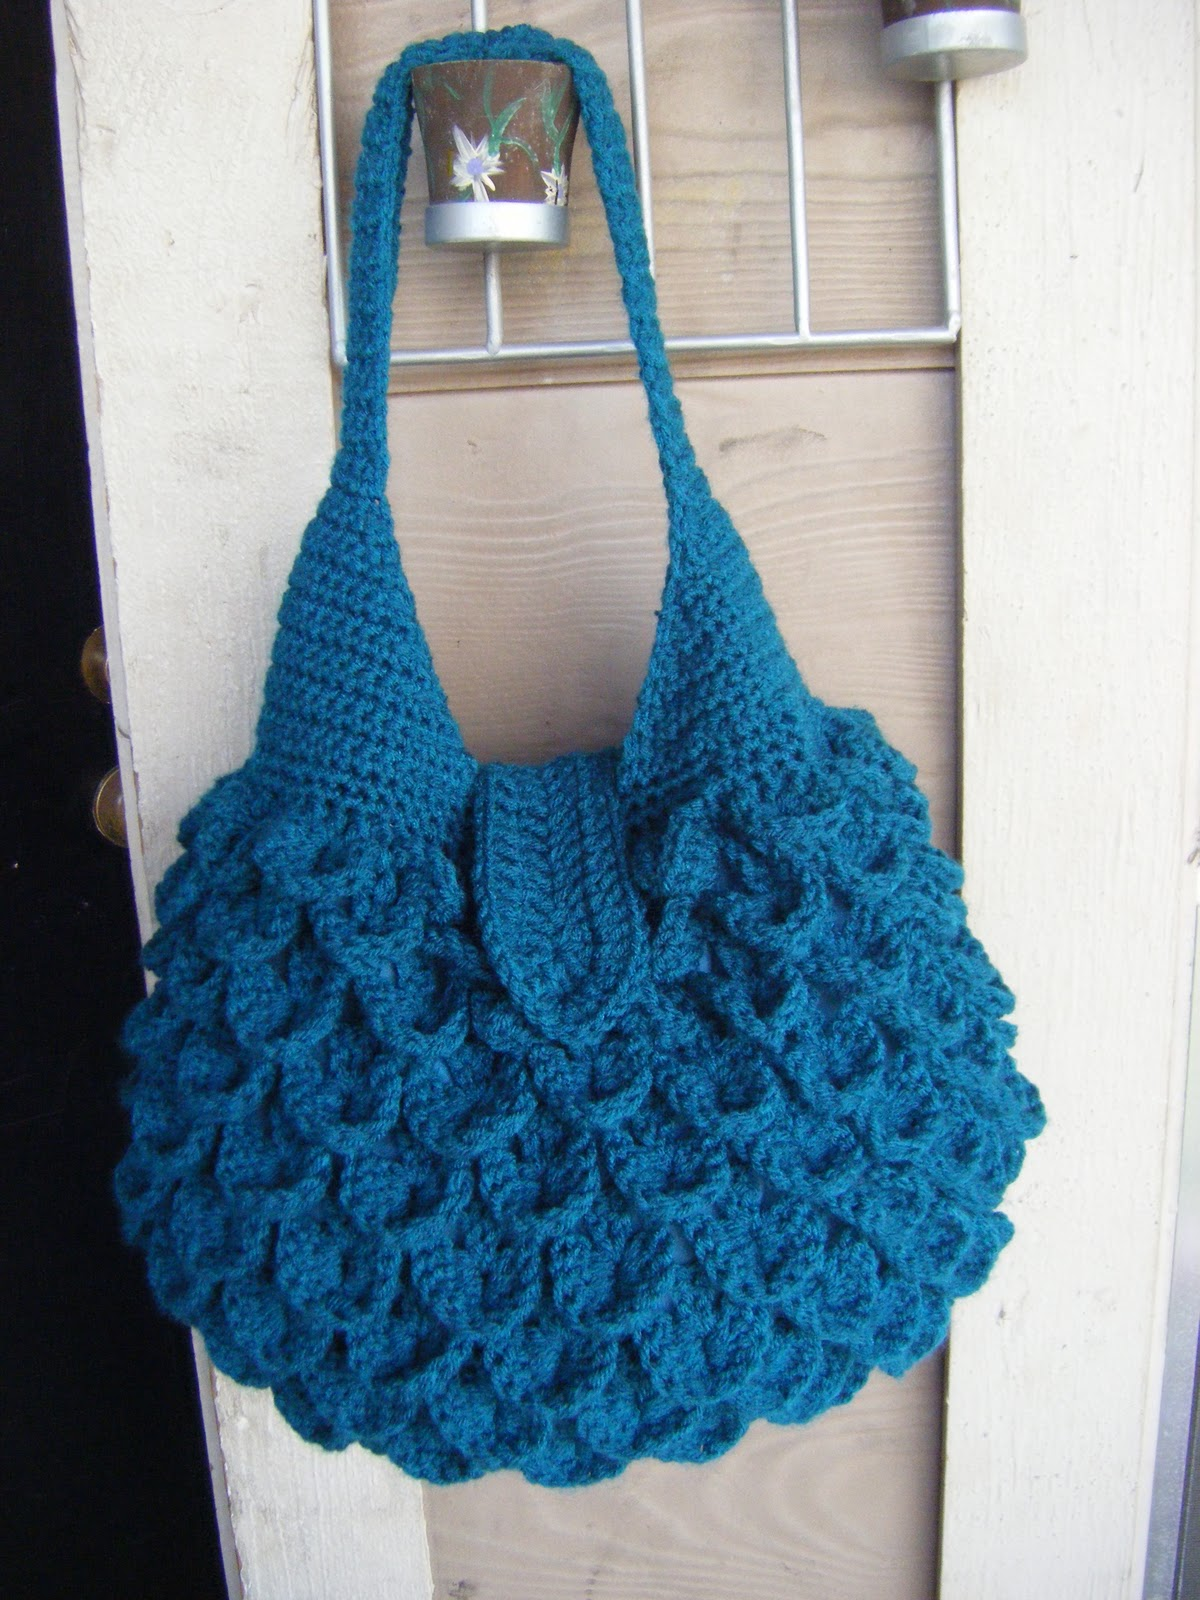 Crochet Tote Pattern : Best Patterns: Crocodile Crochet Bag PATTERN